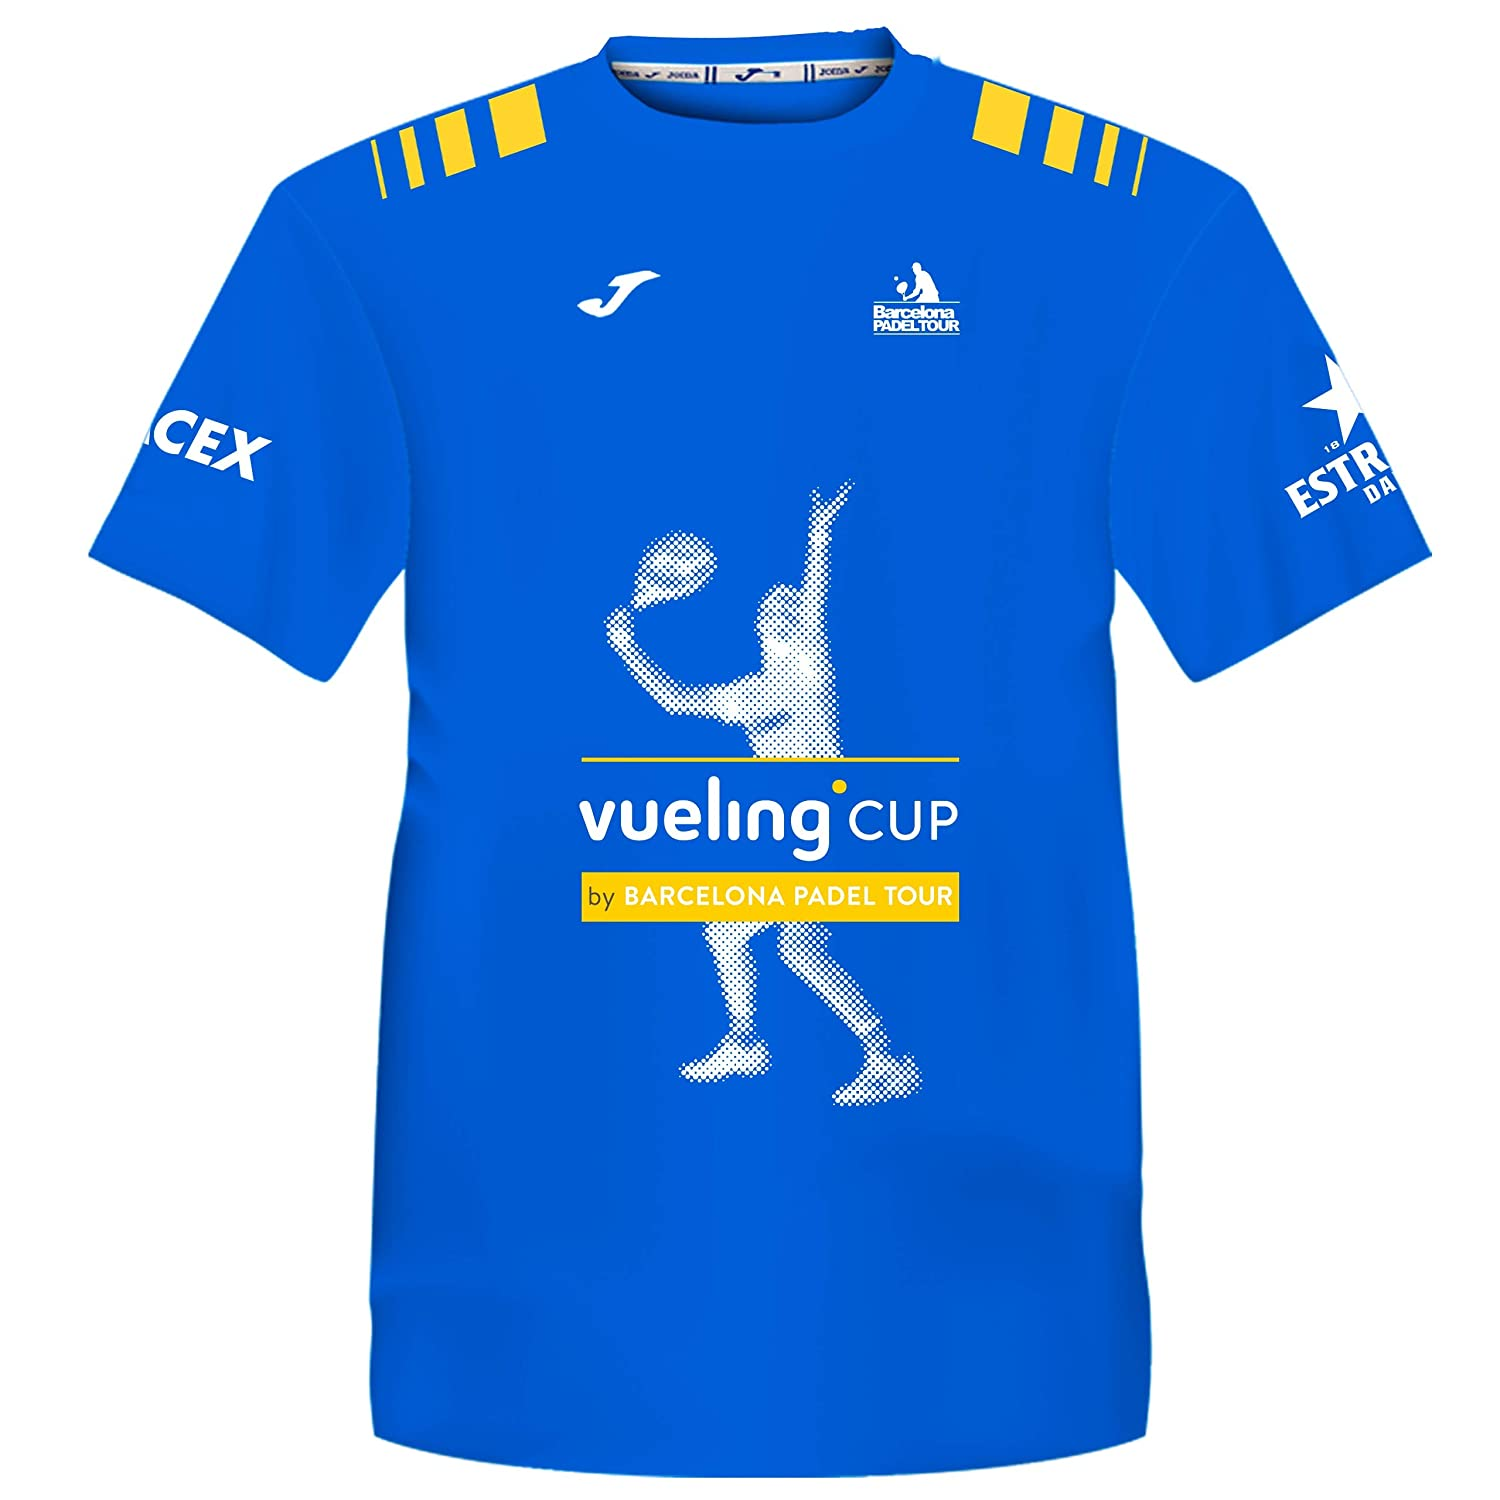 Barcelona Padel Tour T-Shirt Manches Courtes Homme Joma Vueling Cup